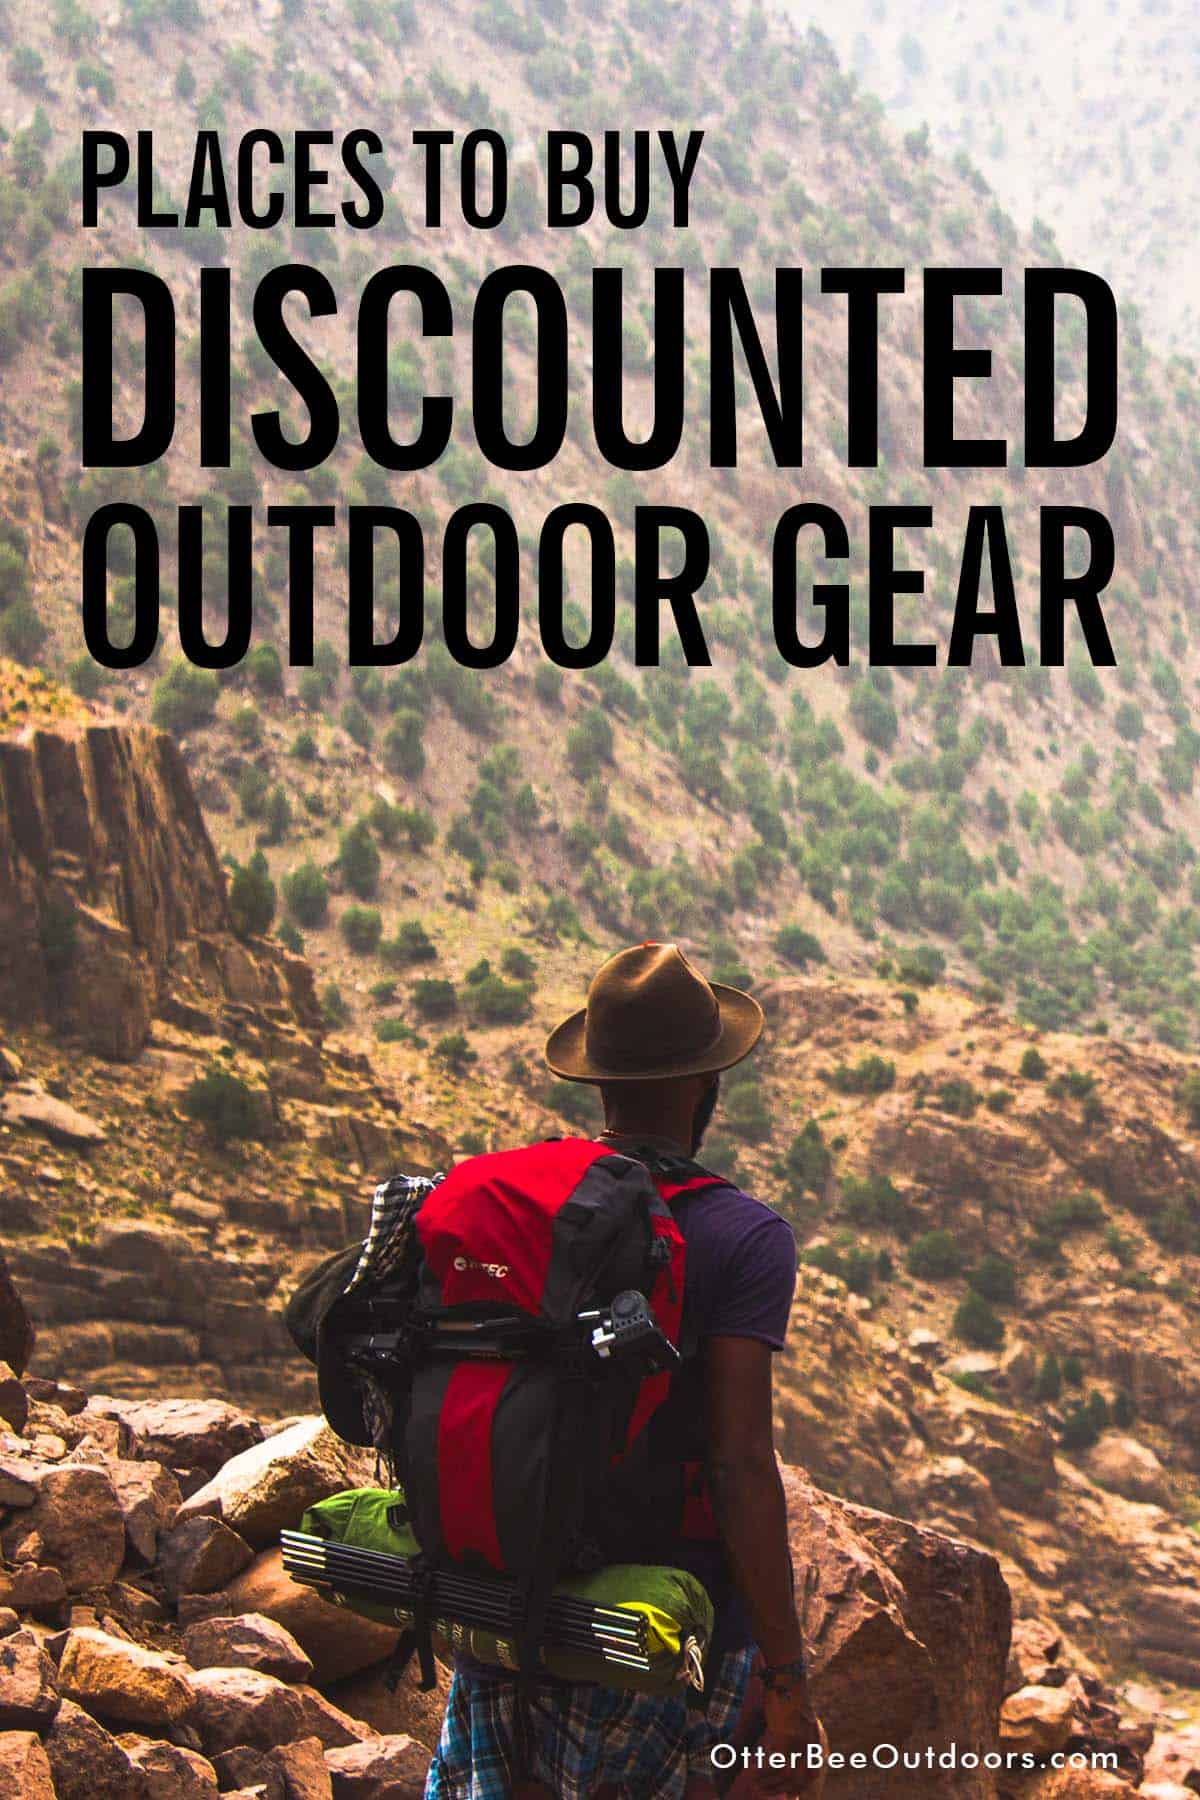 Backpacking through the mountains. The graphic states, Places to Buy Discounted Outdoor Gear.